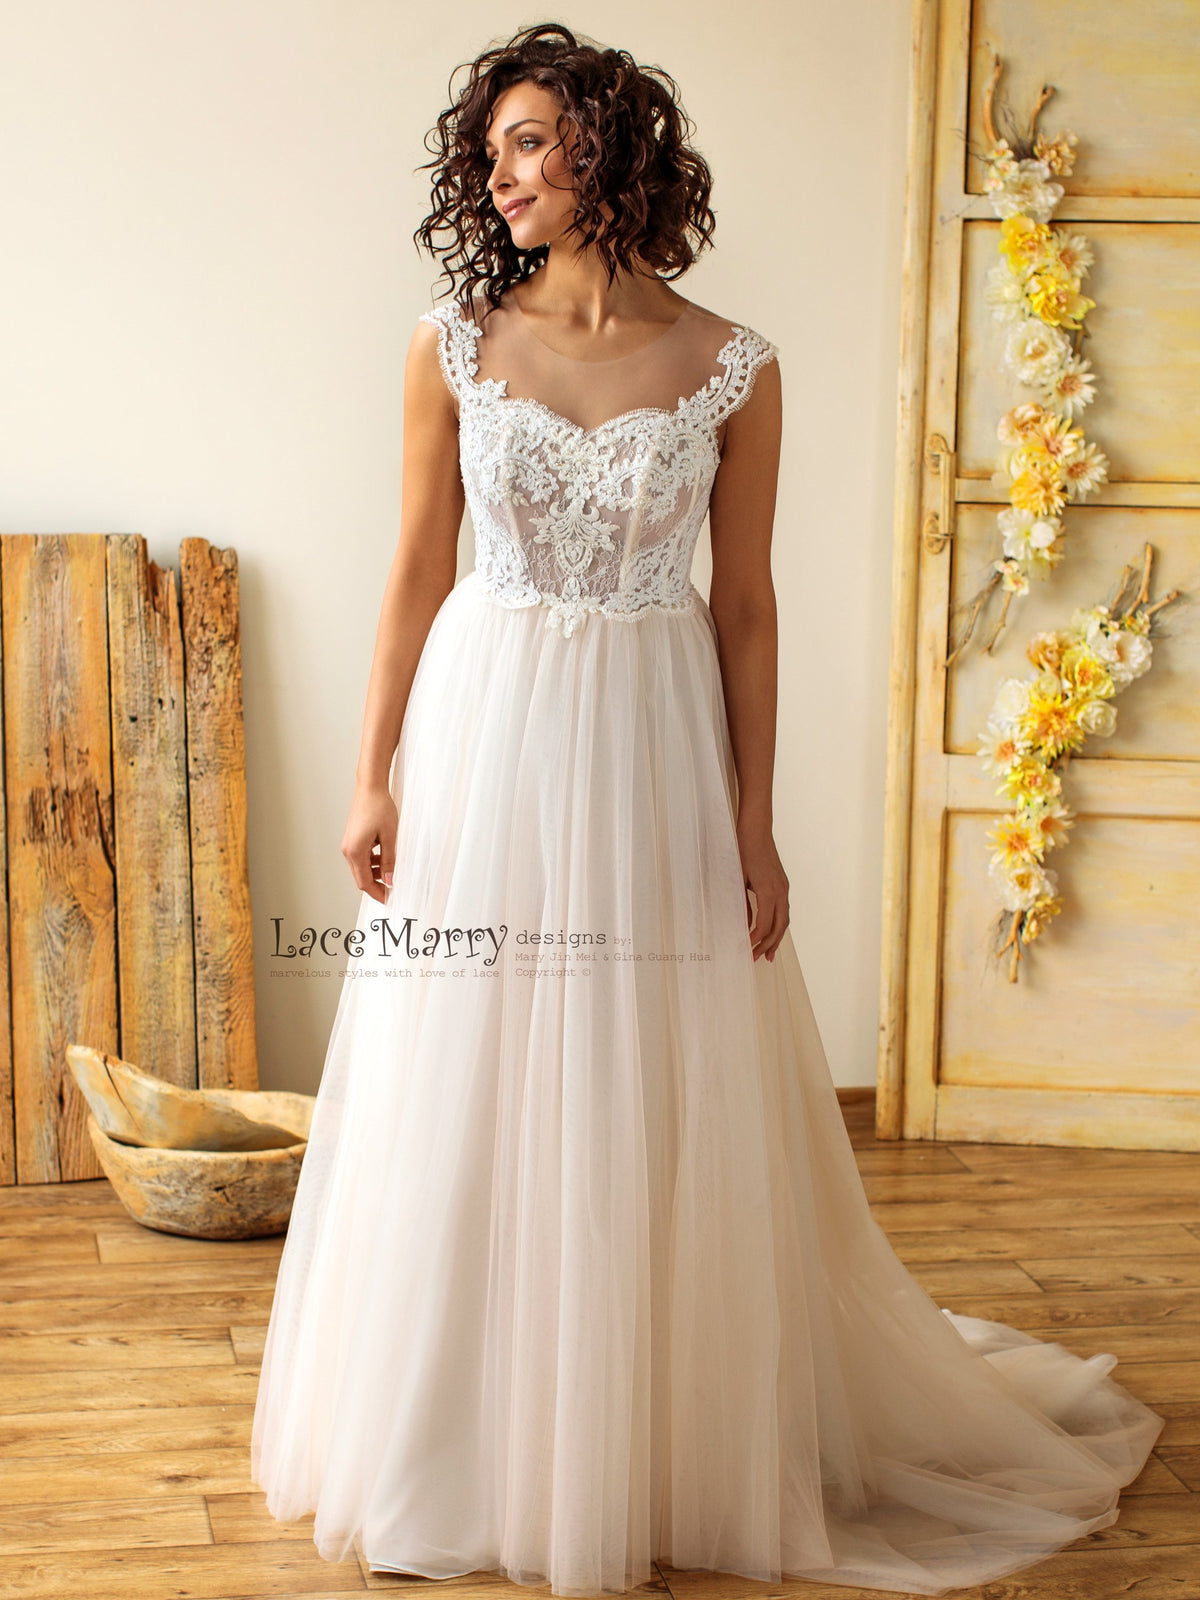 A Line Boho Wedding Dress with Light and Flowy Skirt